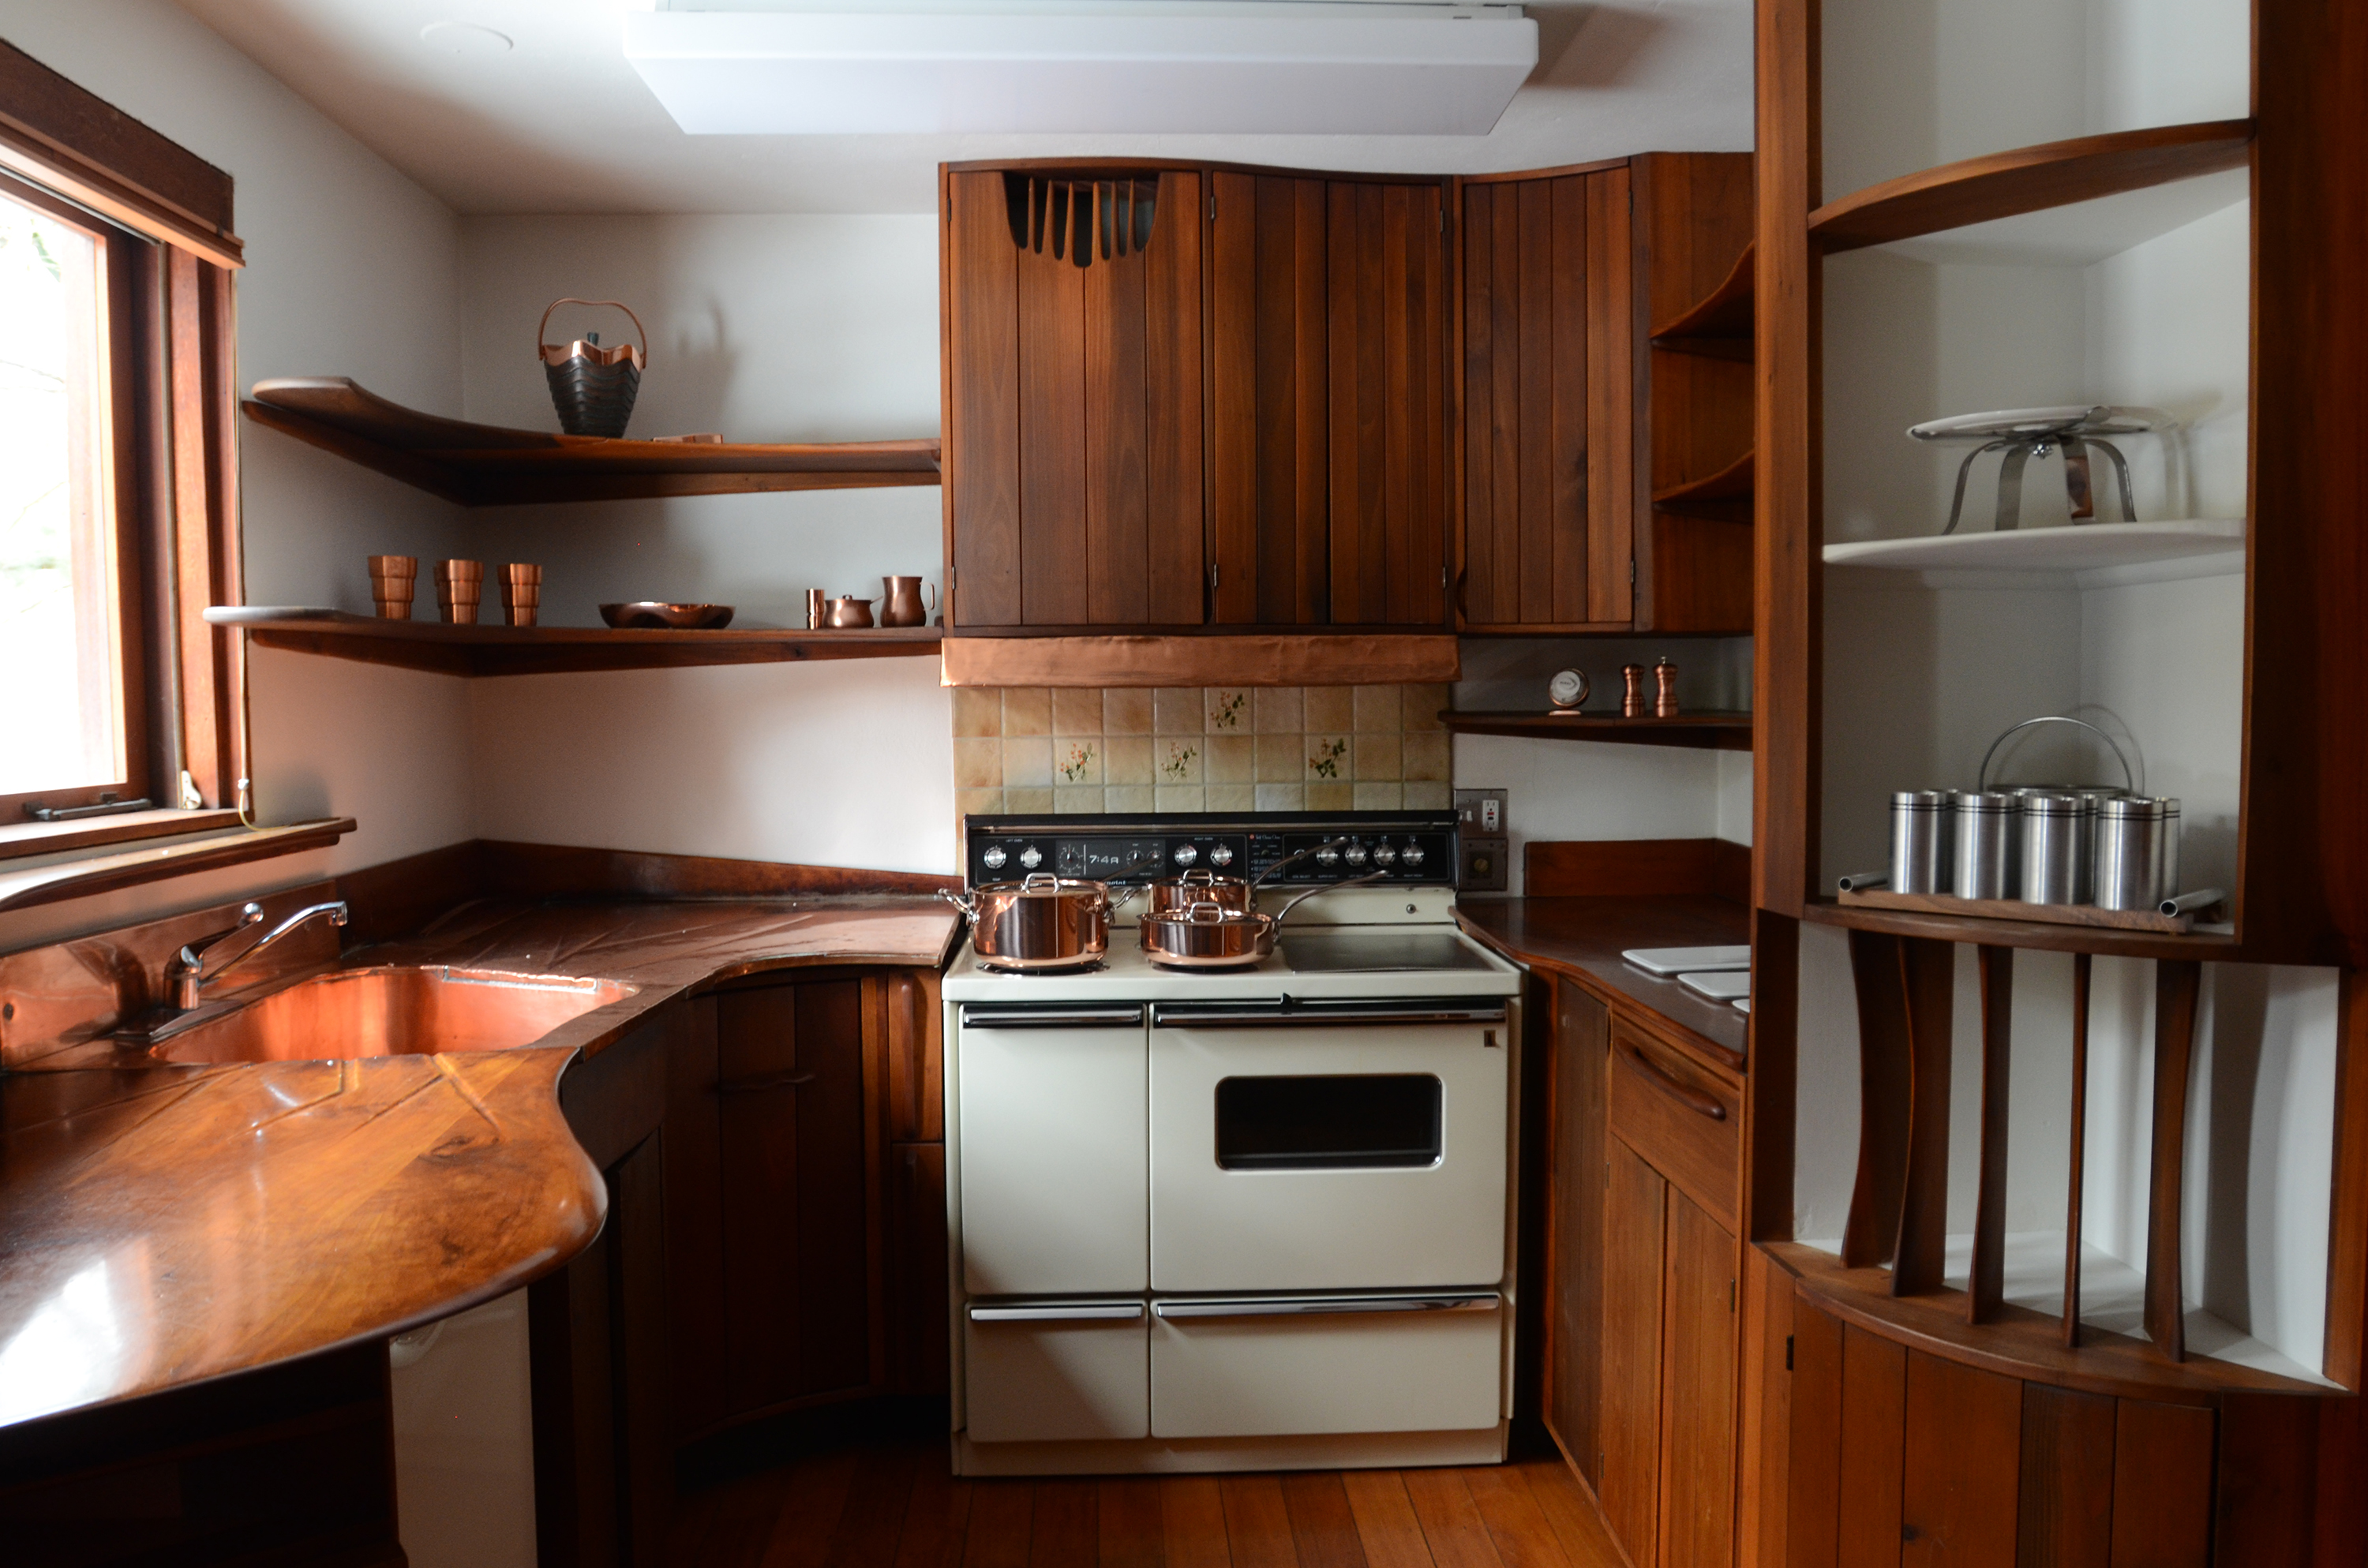 Esherick House kitchen, before renovation | courtesy of owner